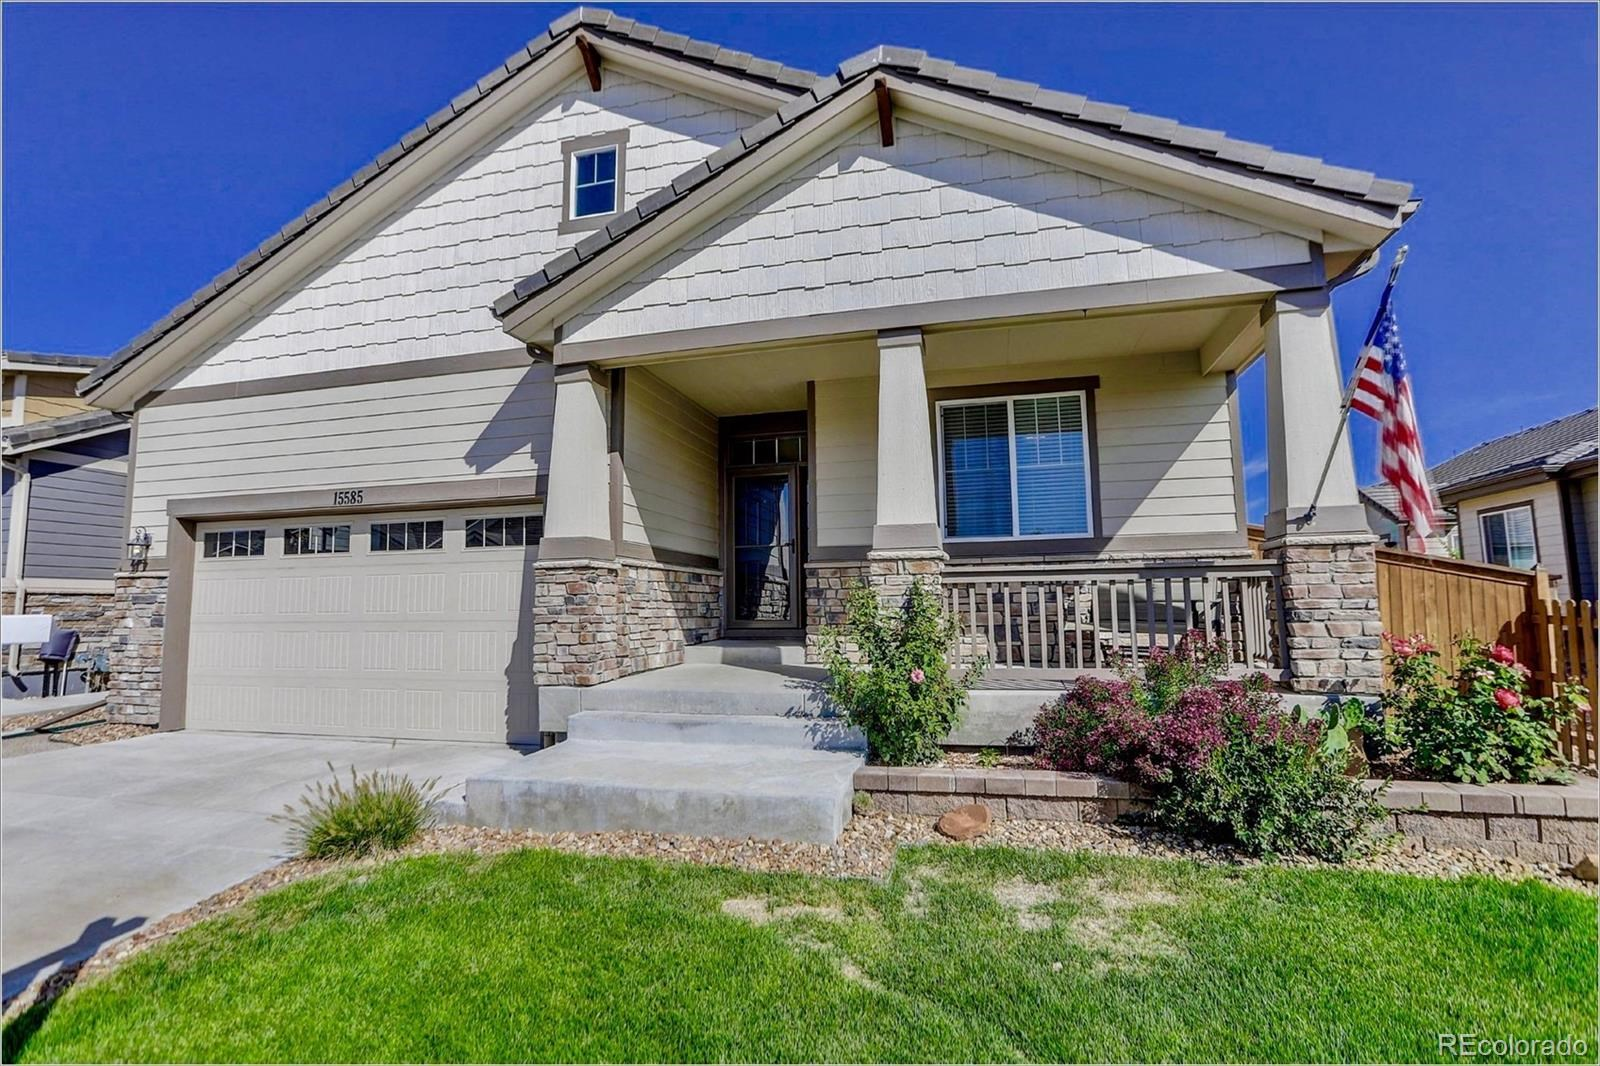 MLS# 9093556 - 1 - 15585 E 115th Avenue, Commerce City, CO 80022